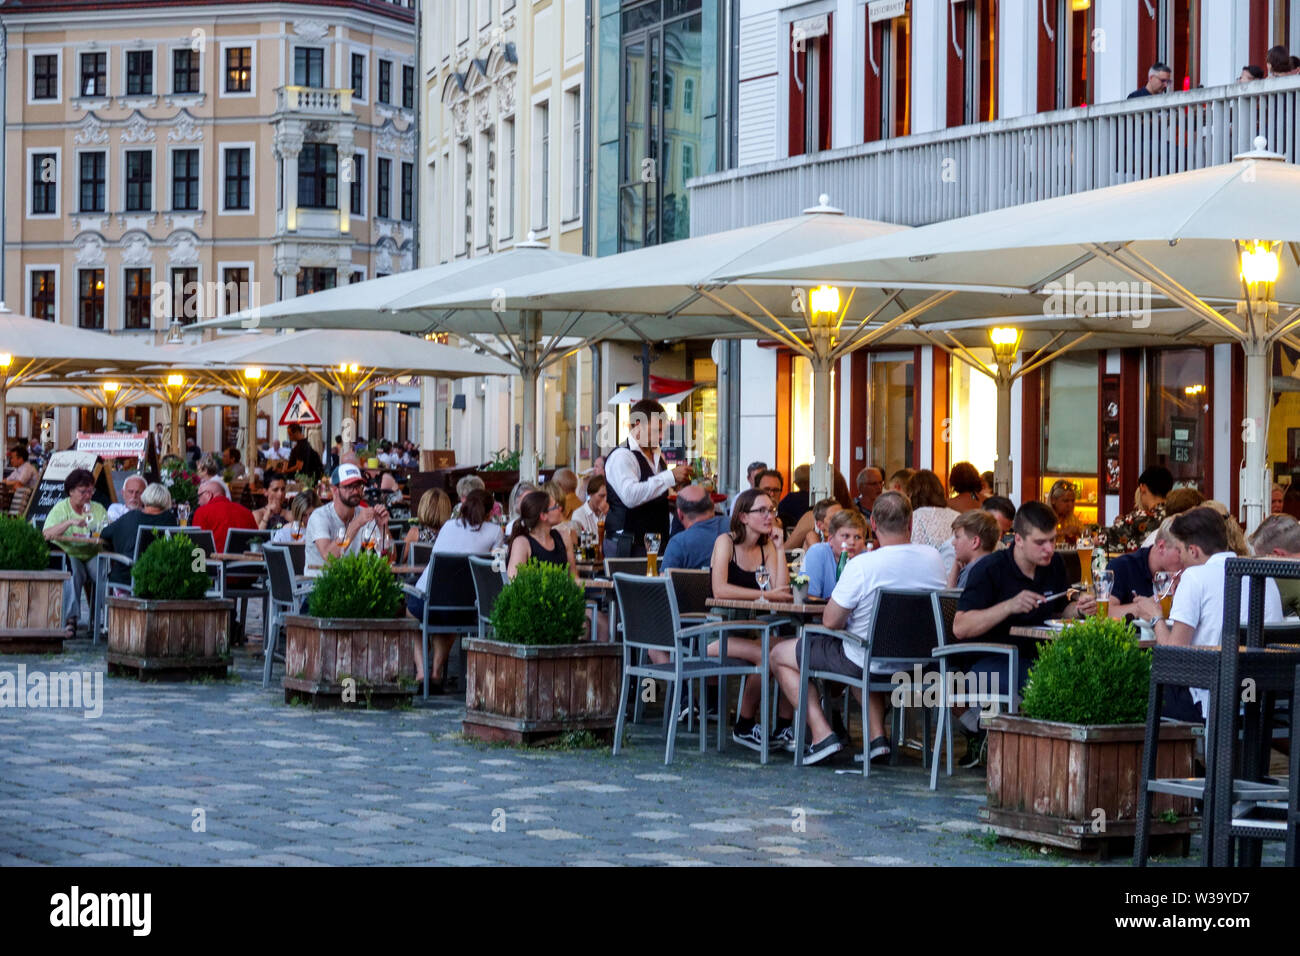 Dresden Germany People, Restaurant at Frauenkirche Square, Old Town - Stock Image